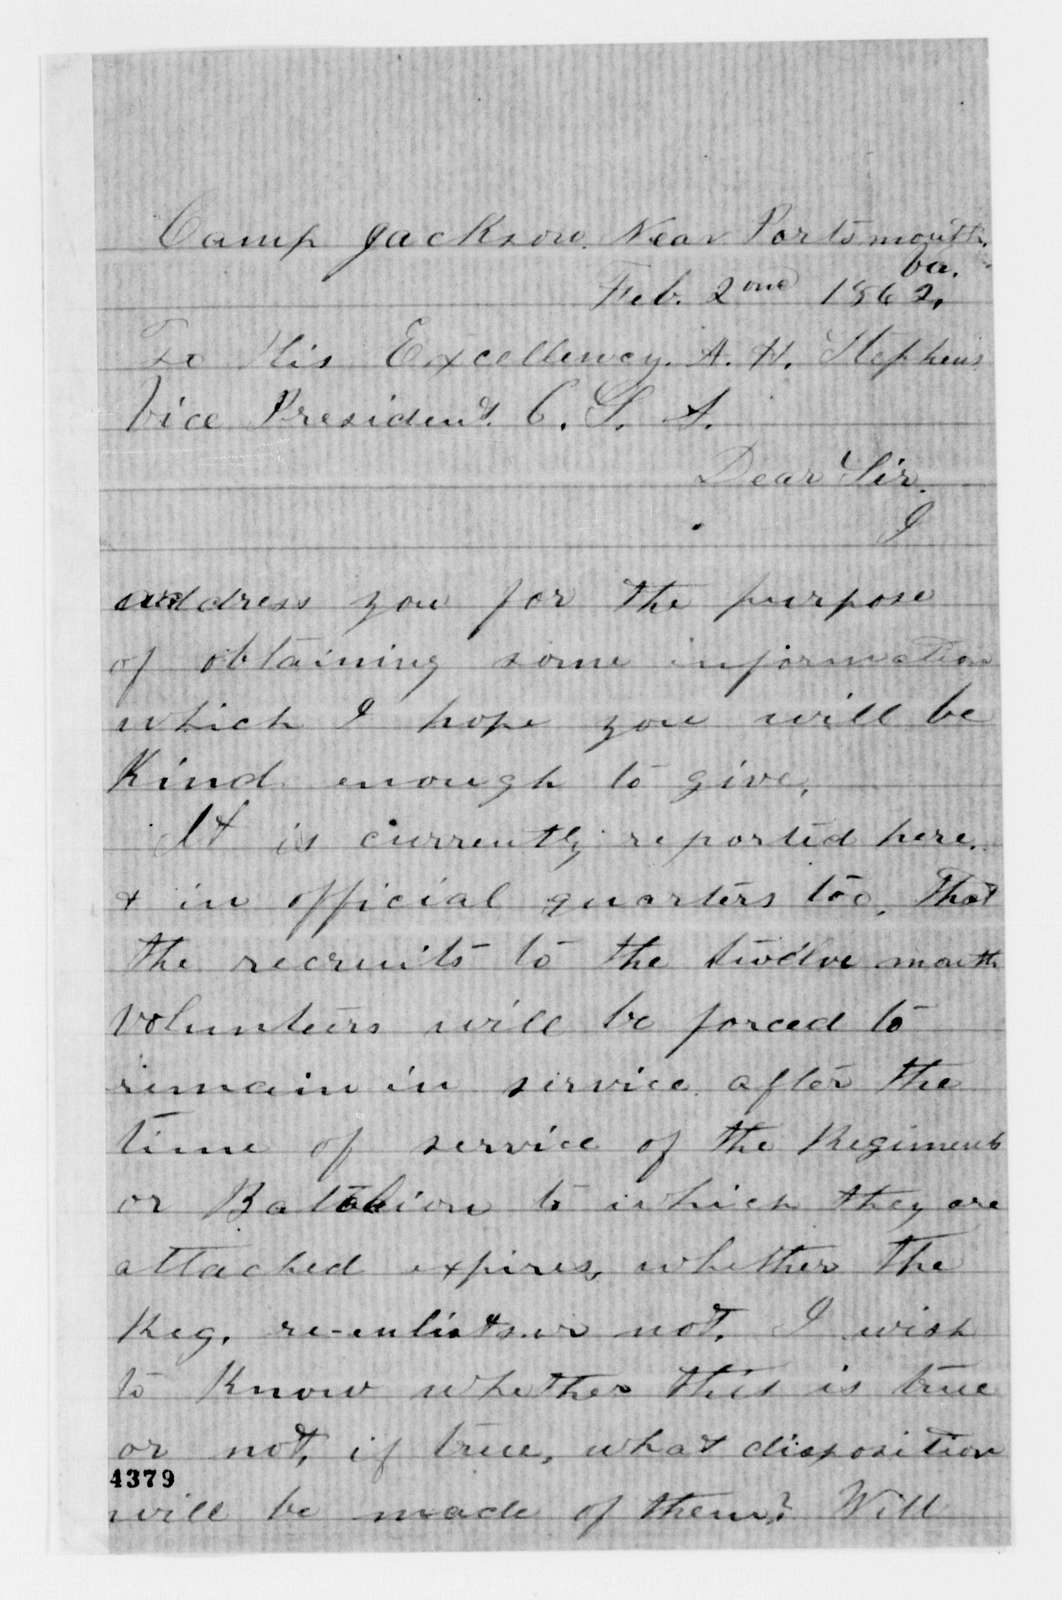 Alexander Hamilton Stephens Papers: General Correspondence, 1784-1886; 1862, Feb. 2-23